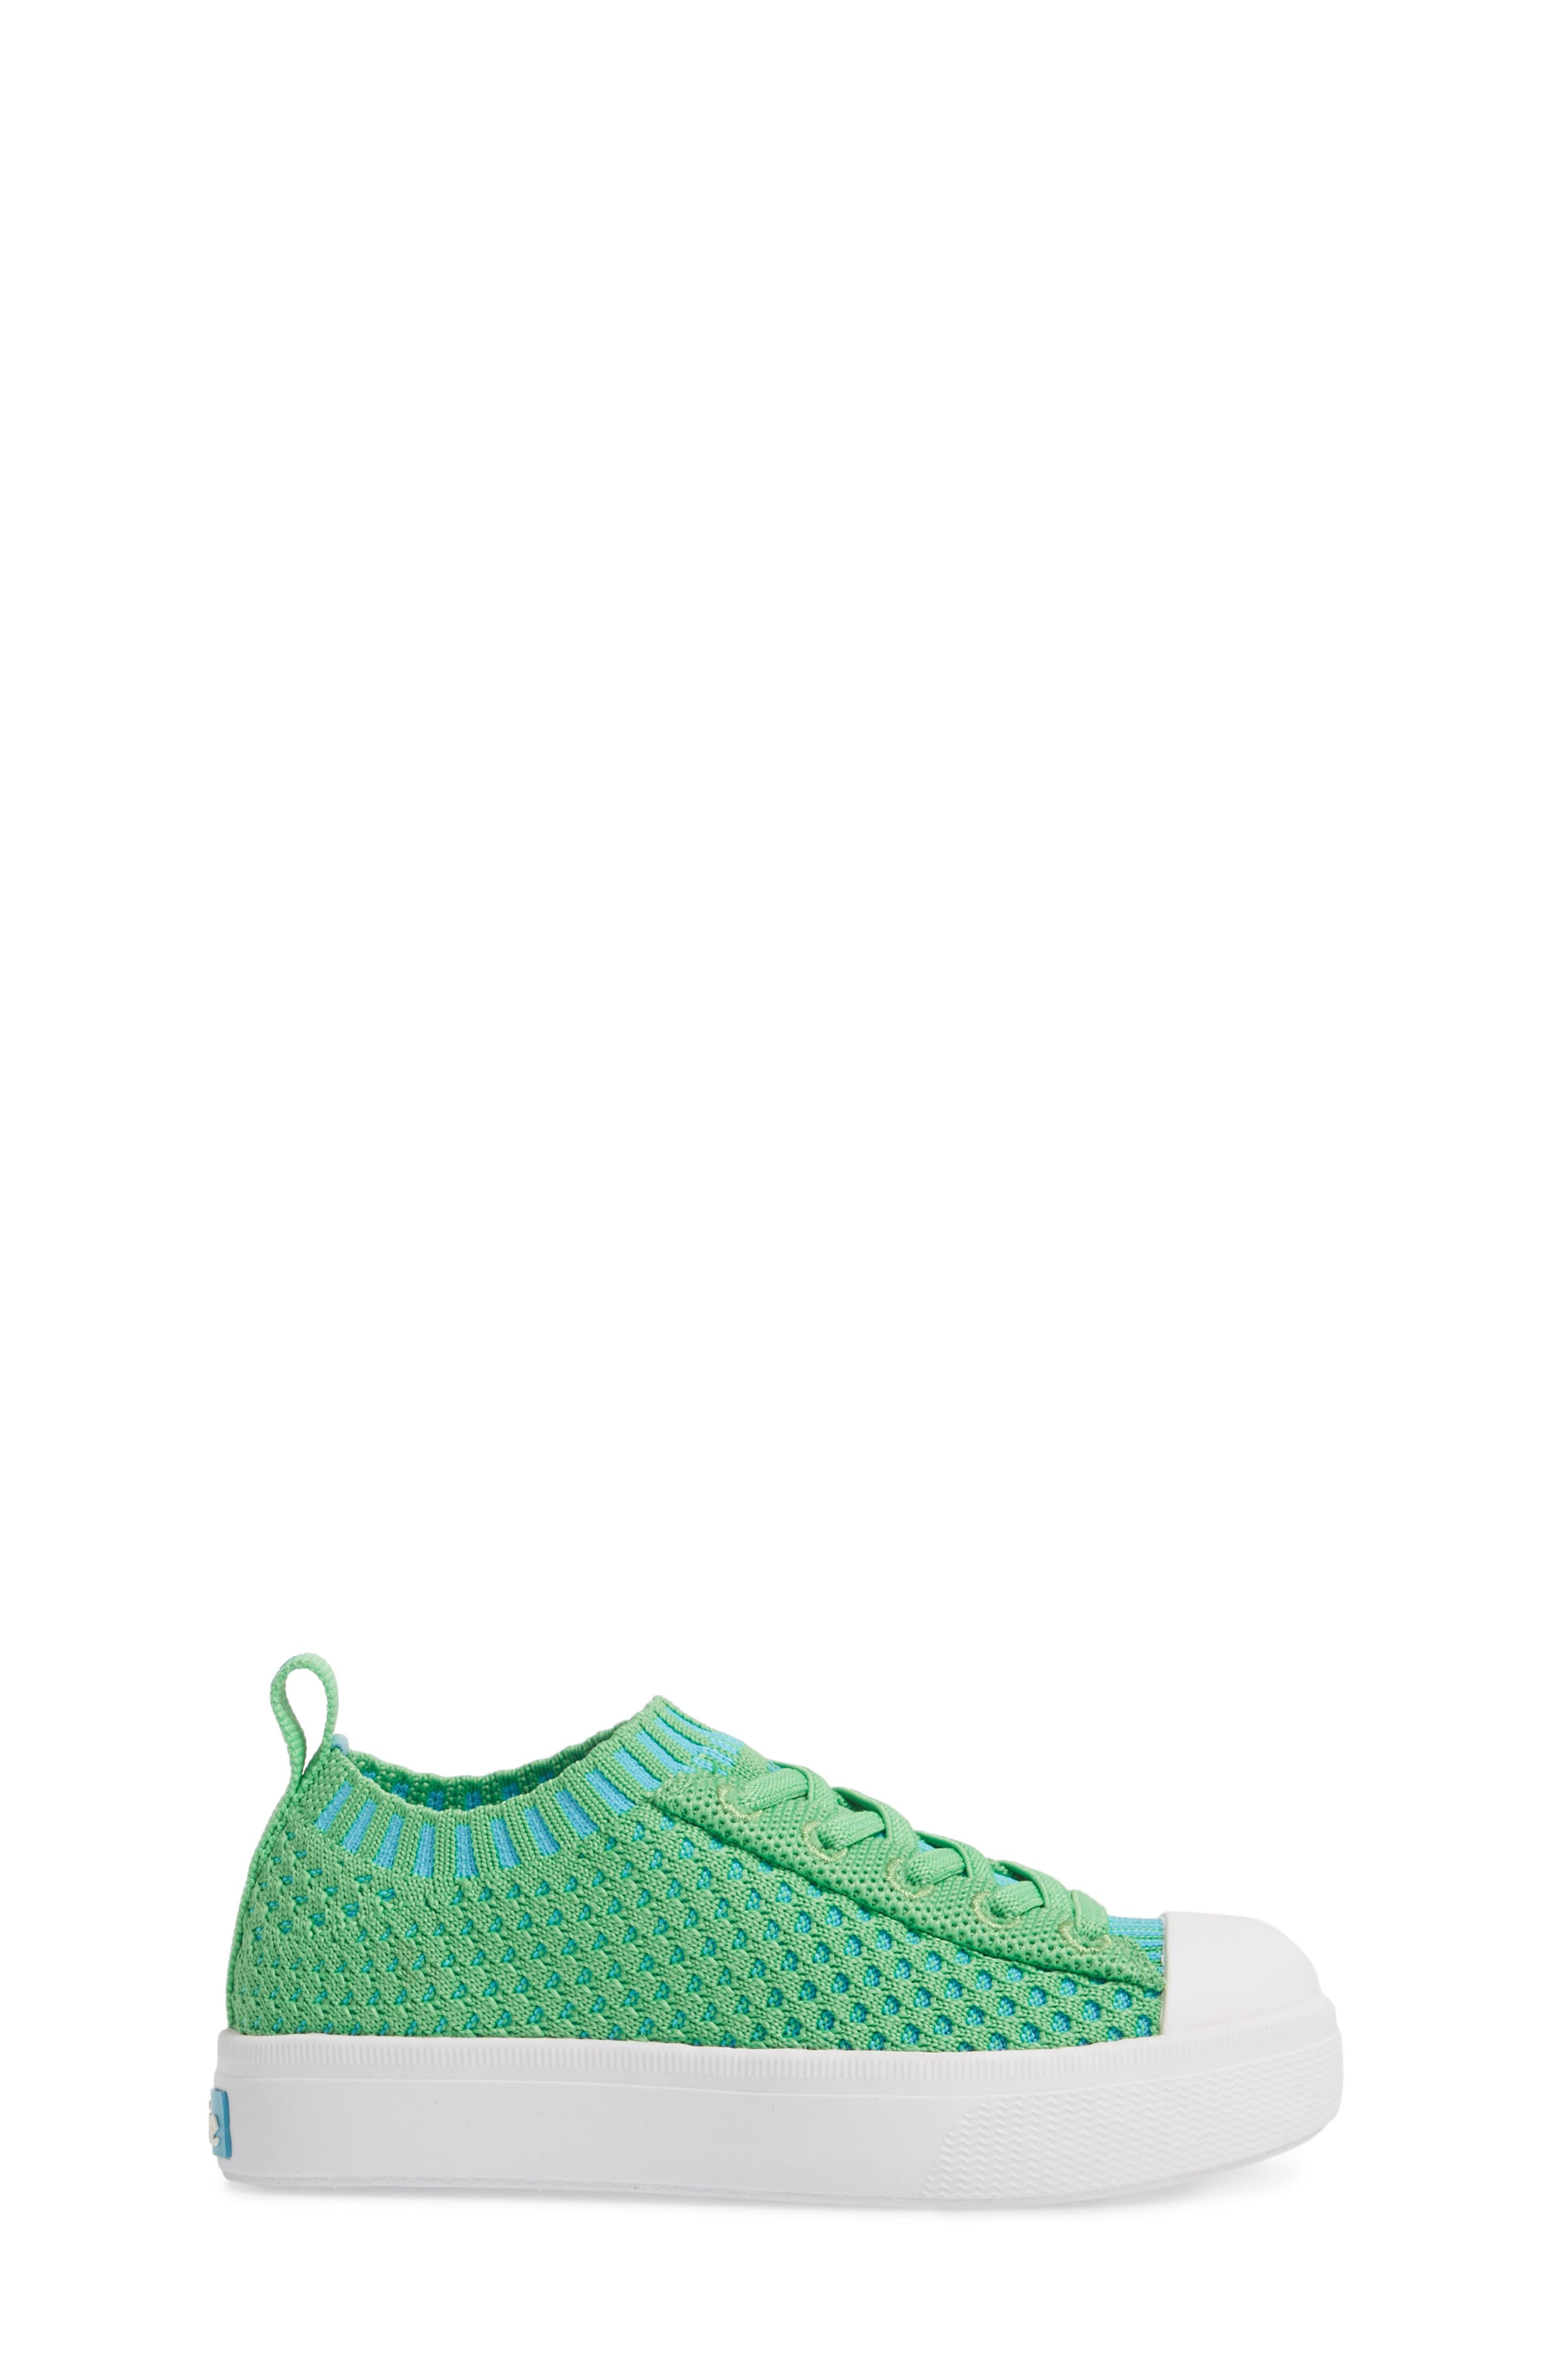 Native Jefferson 2.0 LiteKnit Sneaker,                             Alternate thumbnail 3, color,                             GRASS GREEN/ SHELL WHITE